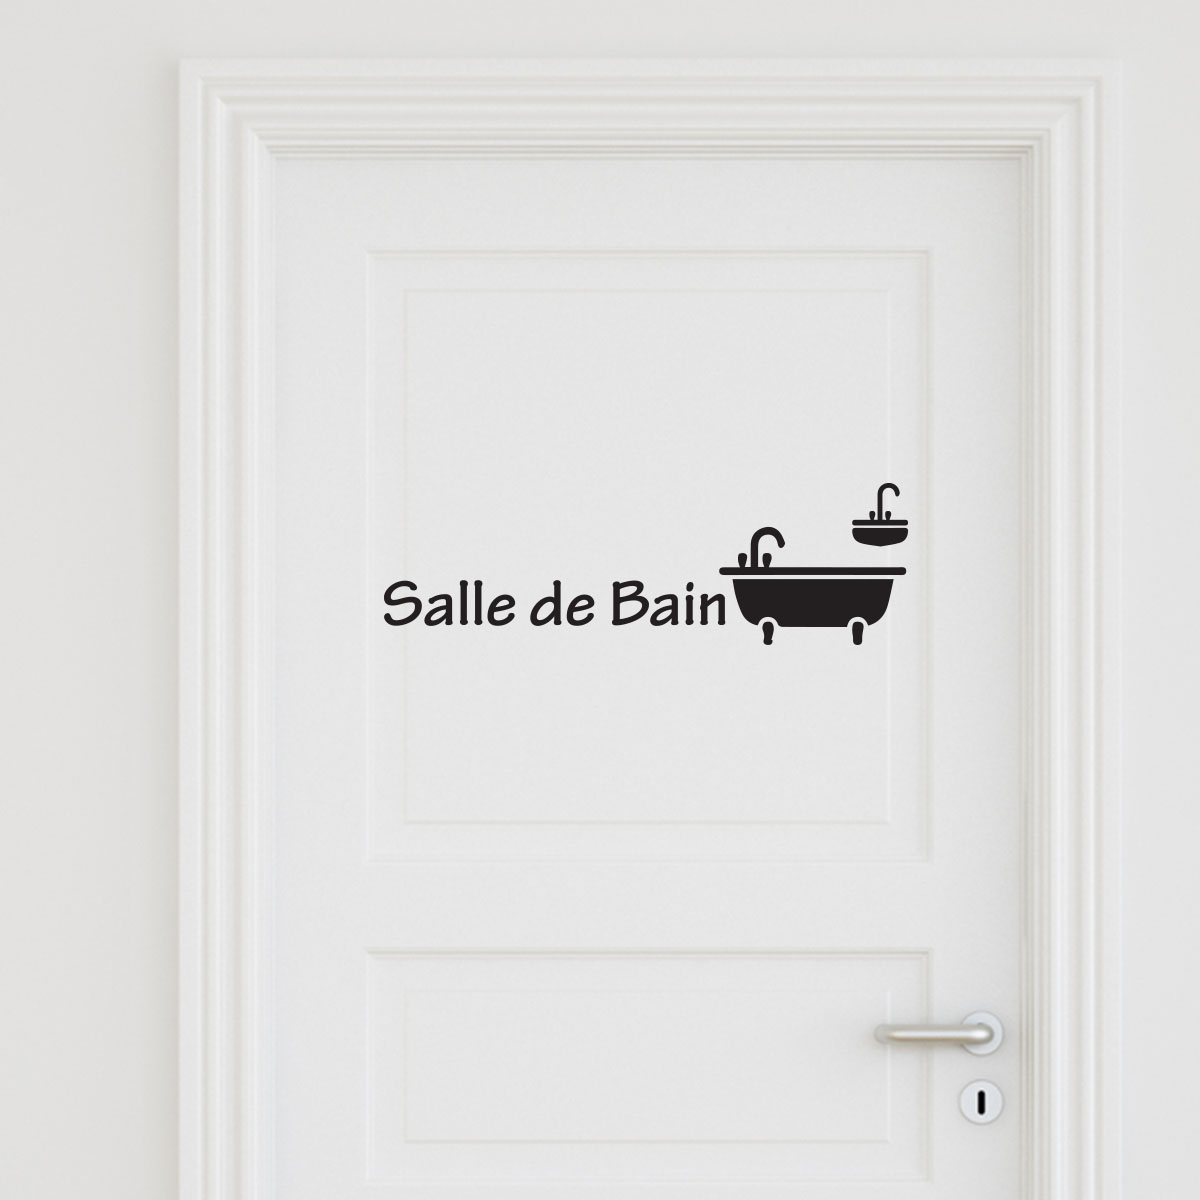 stickers porte salle de bain d coration de maison On decoration porte salle de bain